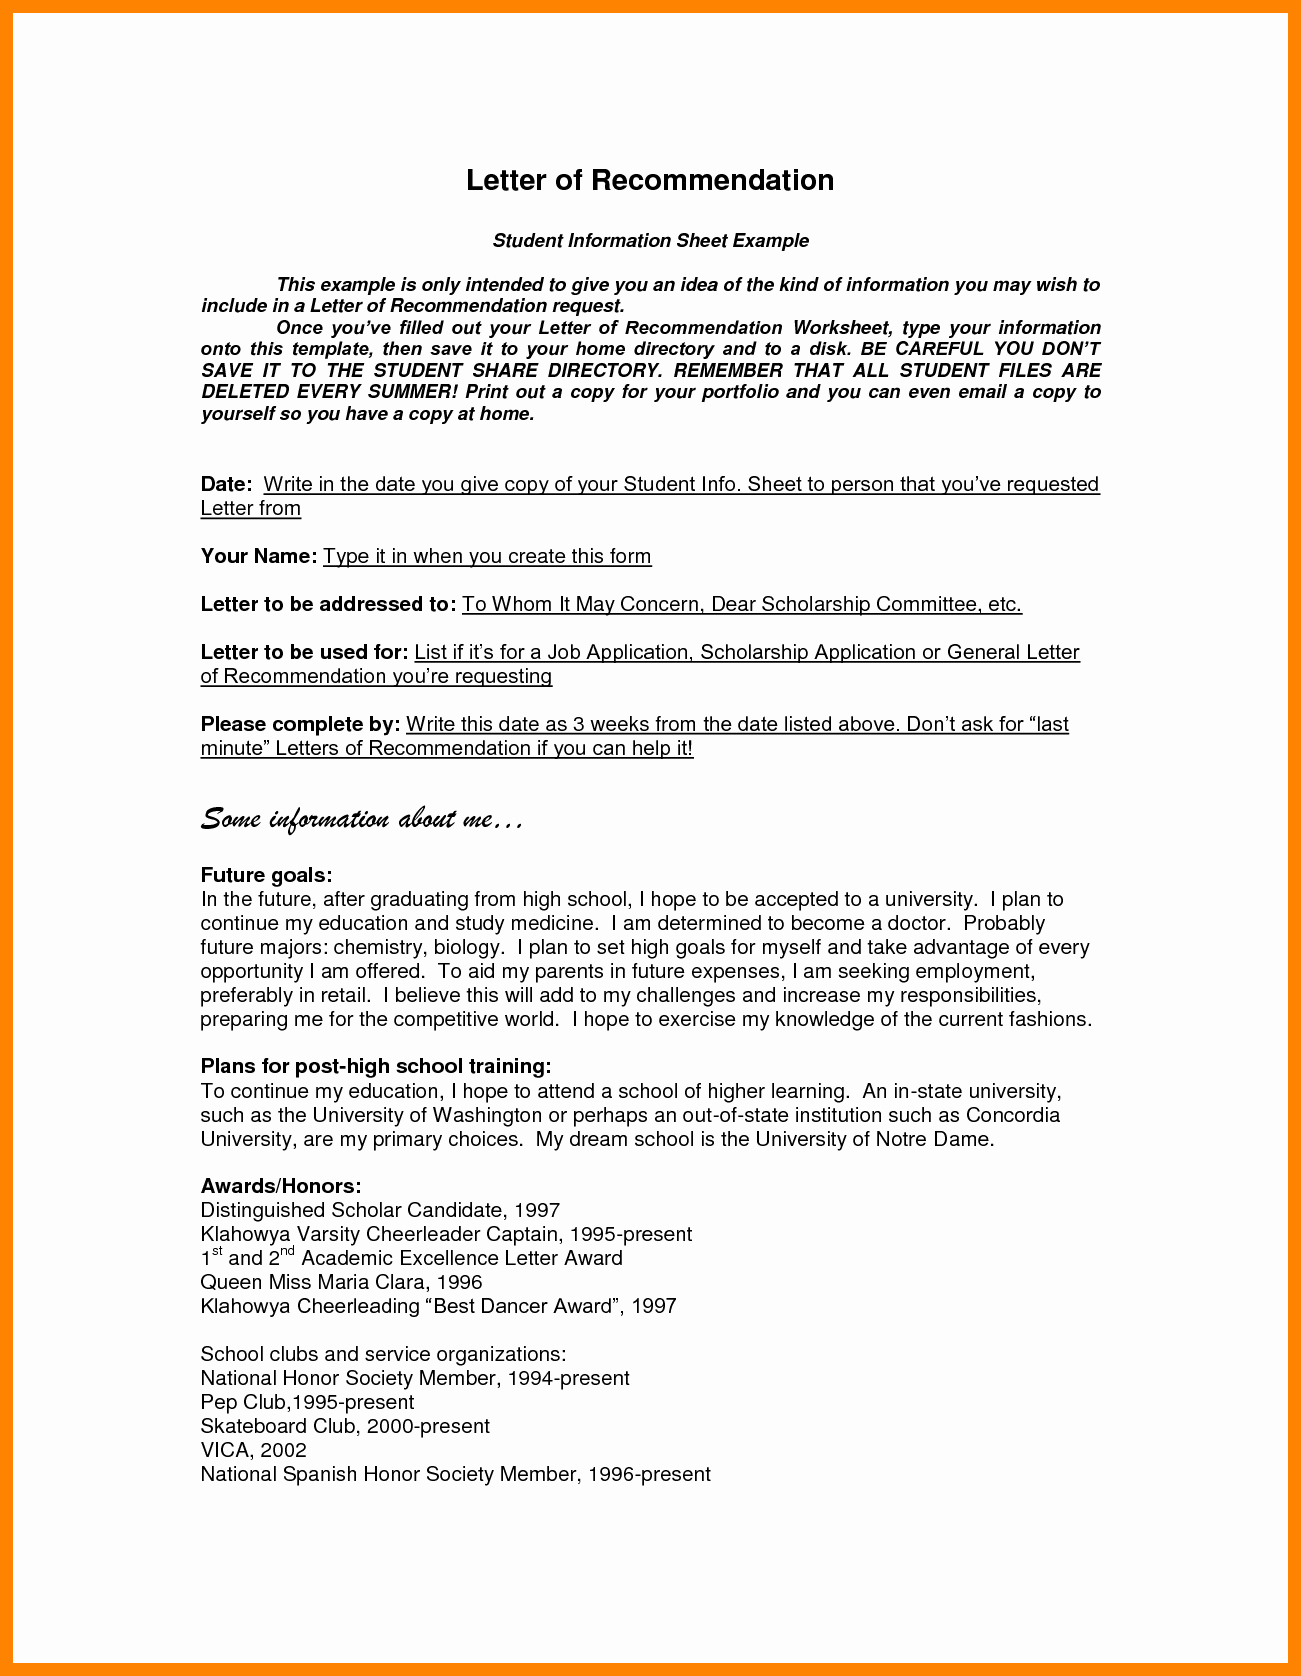 Letter Of Recommendation Word Template Inspirational Letter Re Mendation Word Template